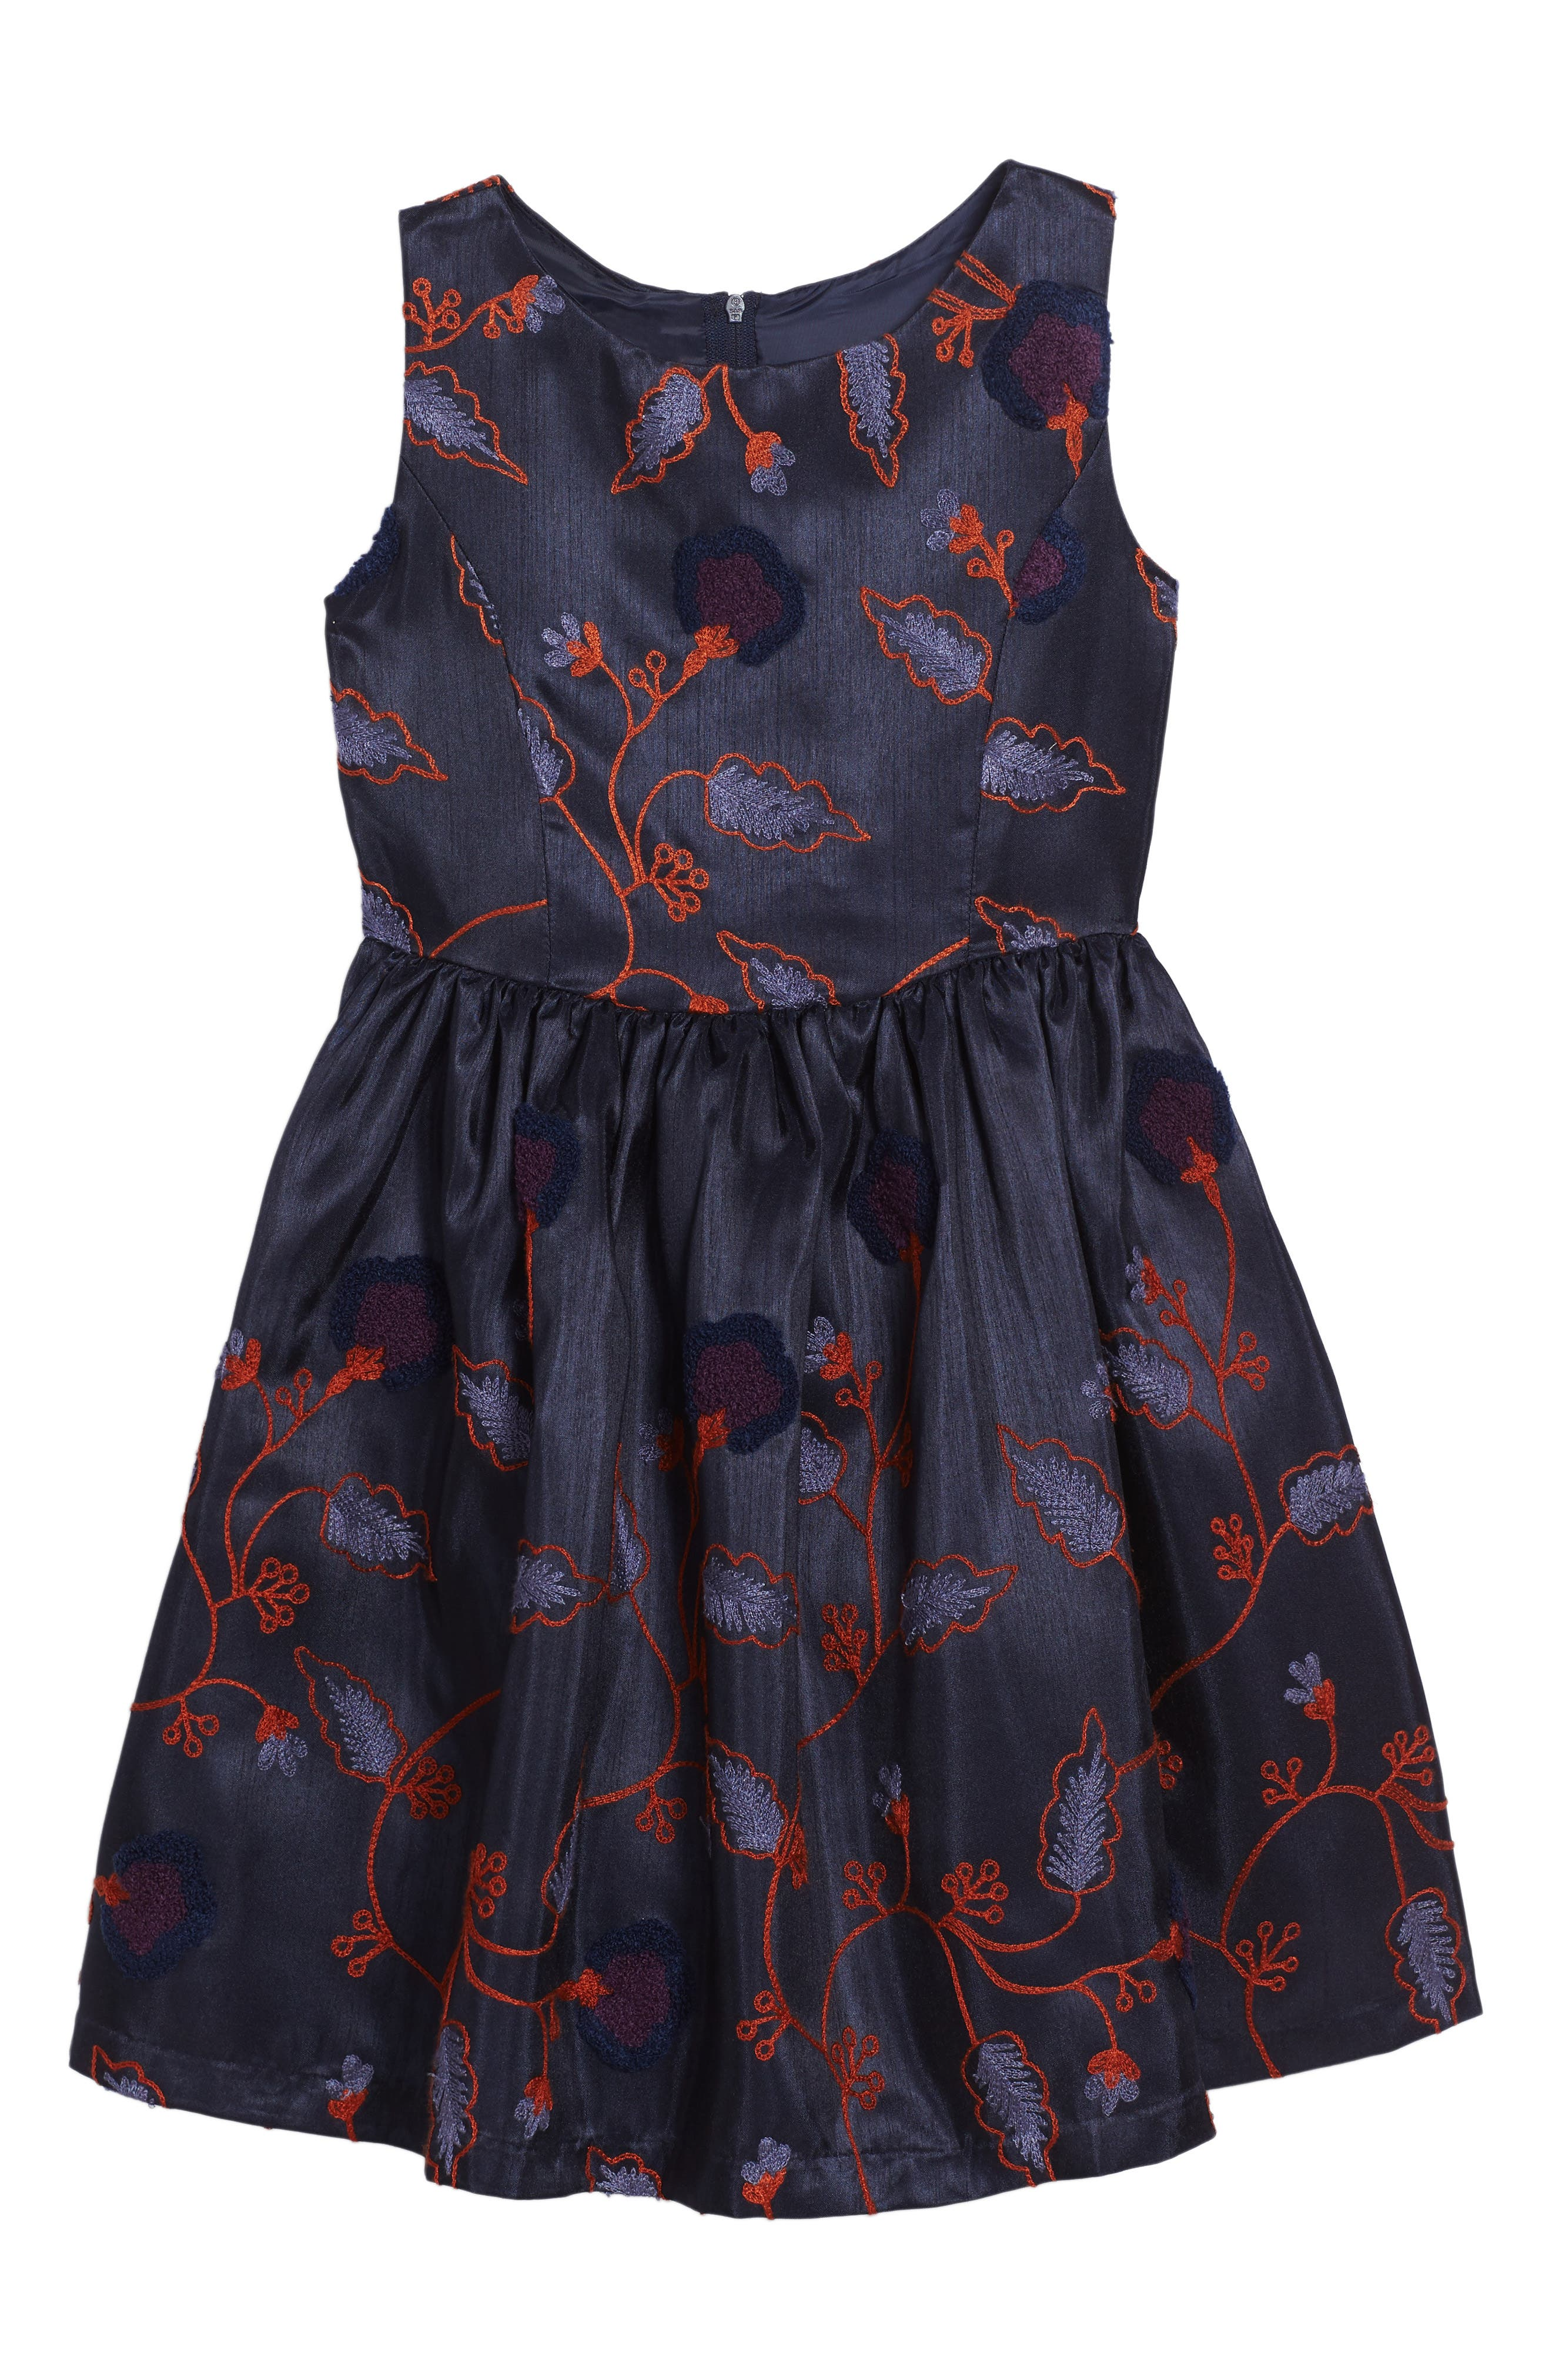 Embroidered Floral Dress,                         Main,                         color, 410